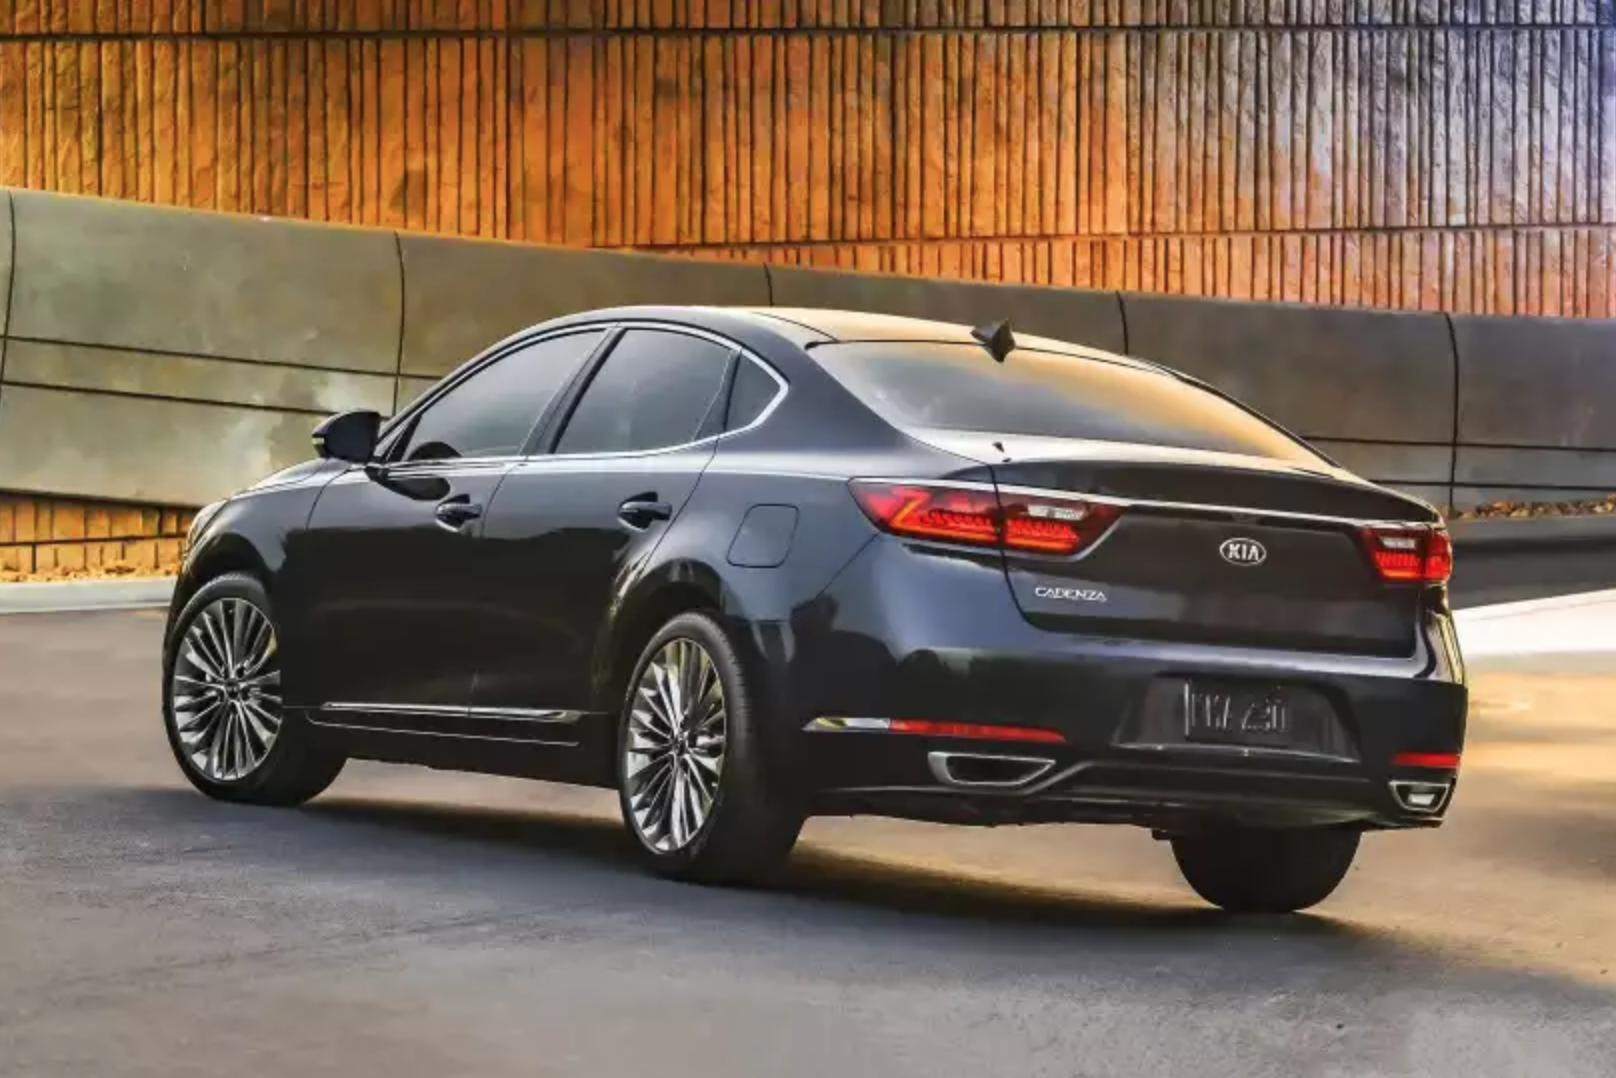 2018 Kia Cadenza in Georgia